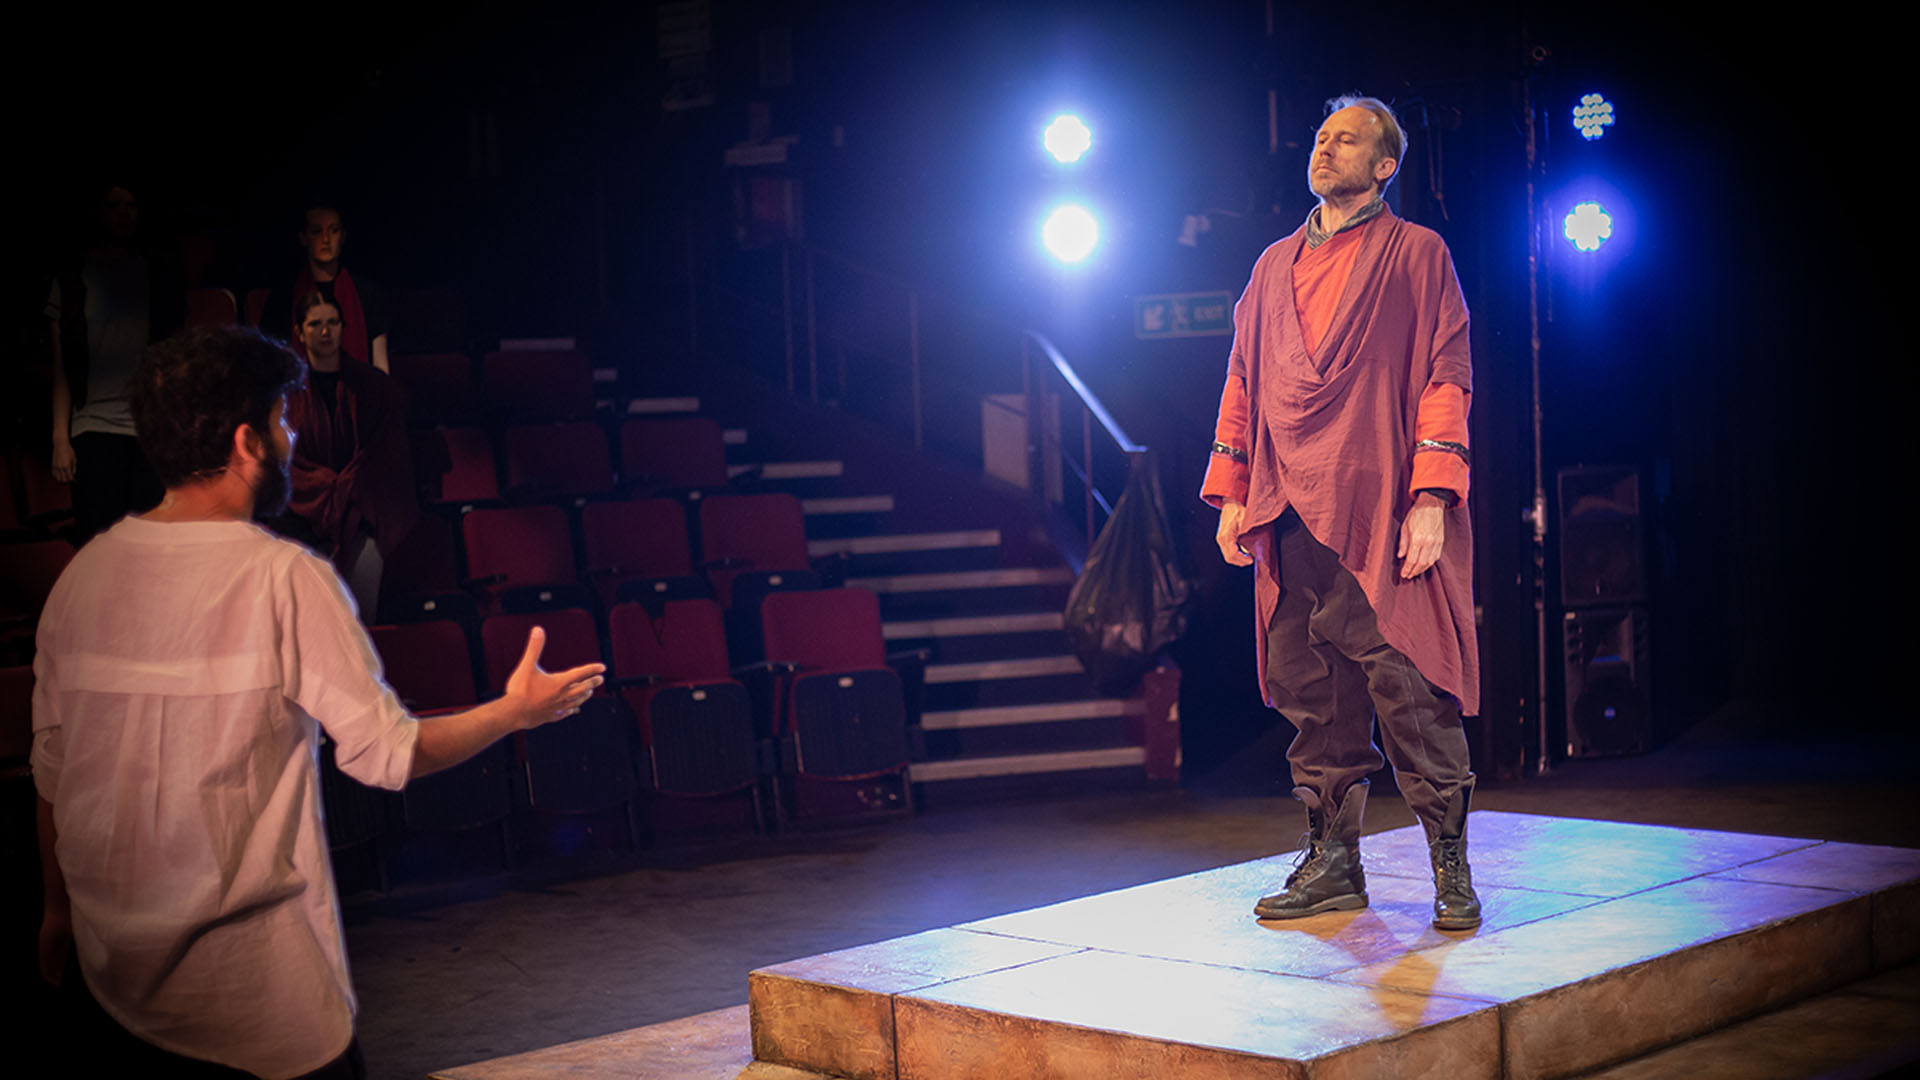 Antigone Rehearsals - David Annen as Kreon on a small platform on stage, wearing a modern toga style costume and combat boots, being directed by Associate Director Yusuf Niazi